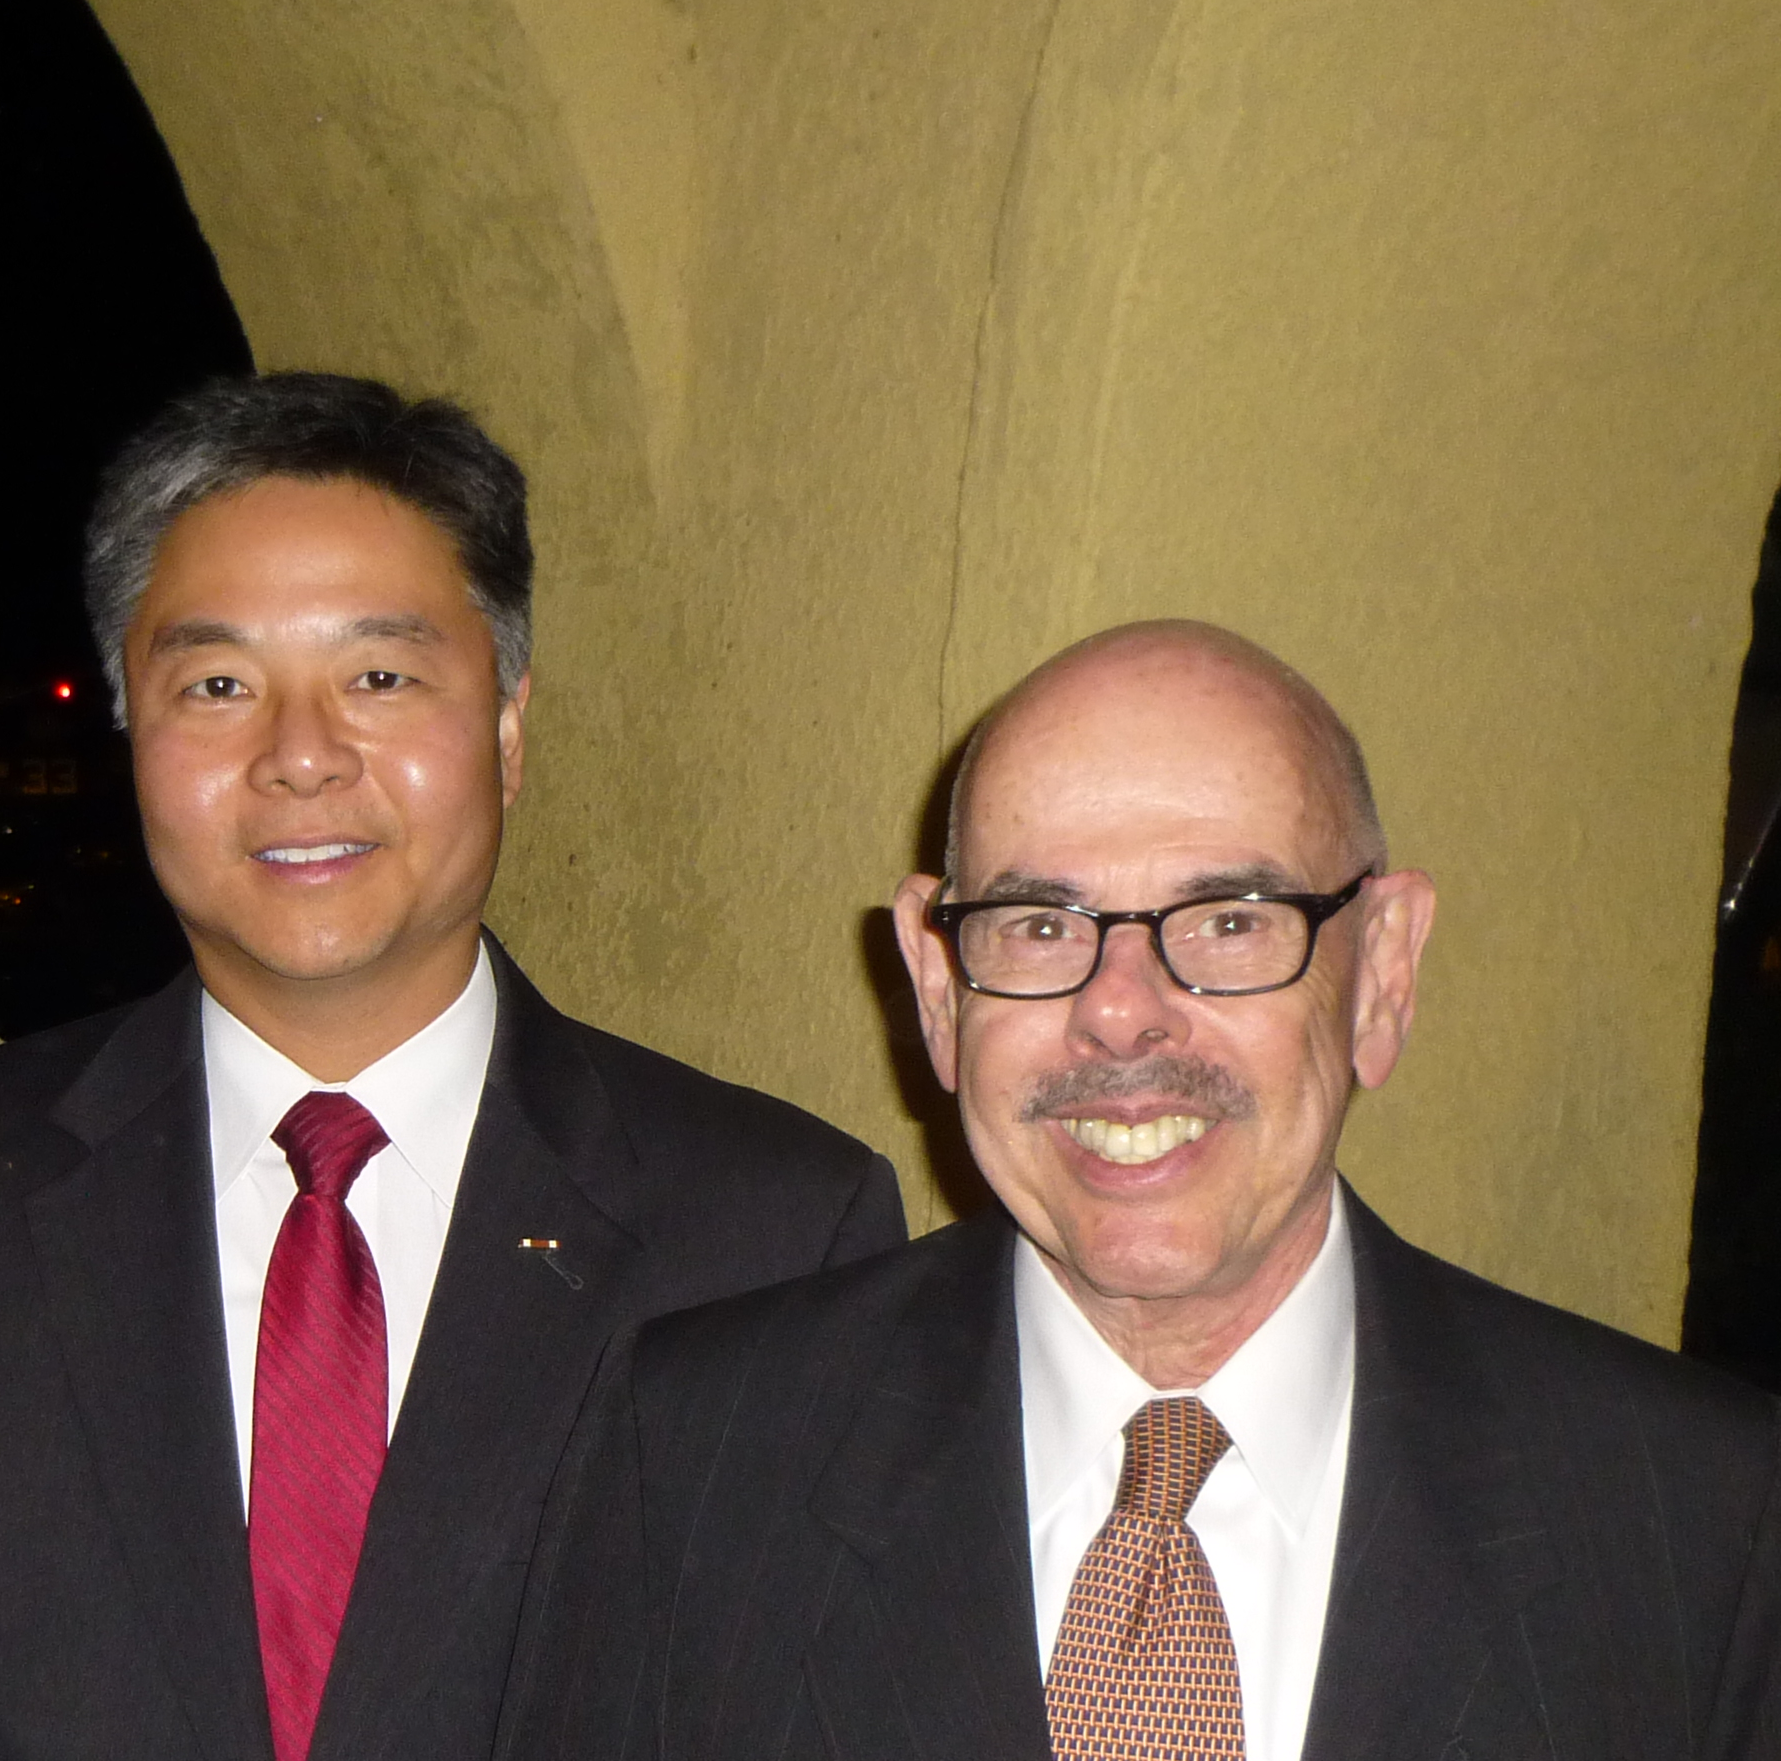 Ted Lieu is elected to Congress, continuing his meteoric political rise